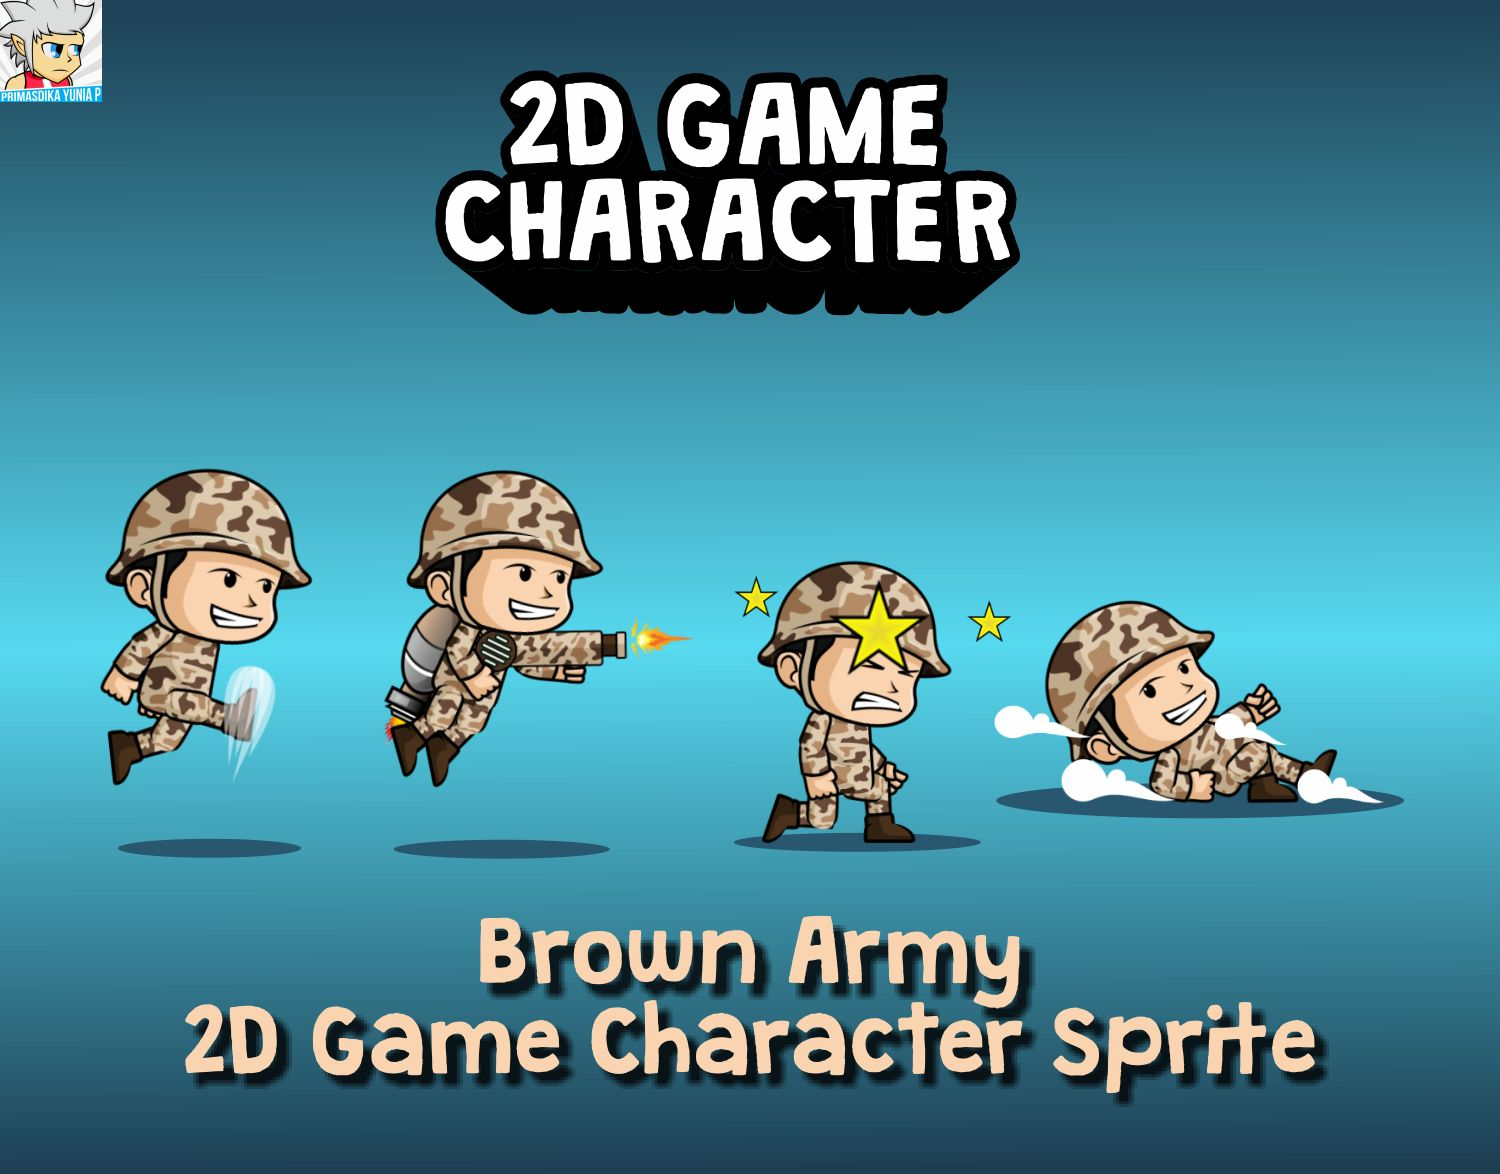 Brown Army 2D Game Character Sprite Screenshot 1